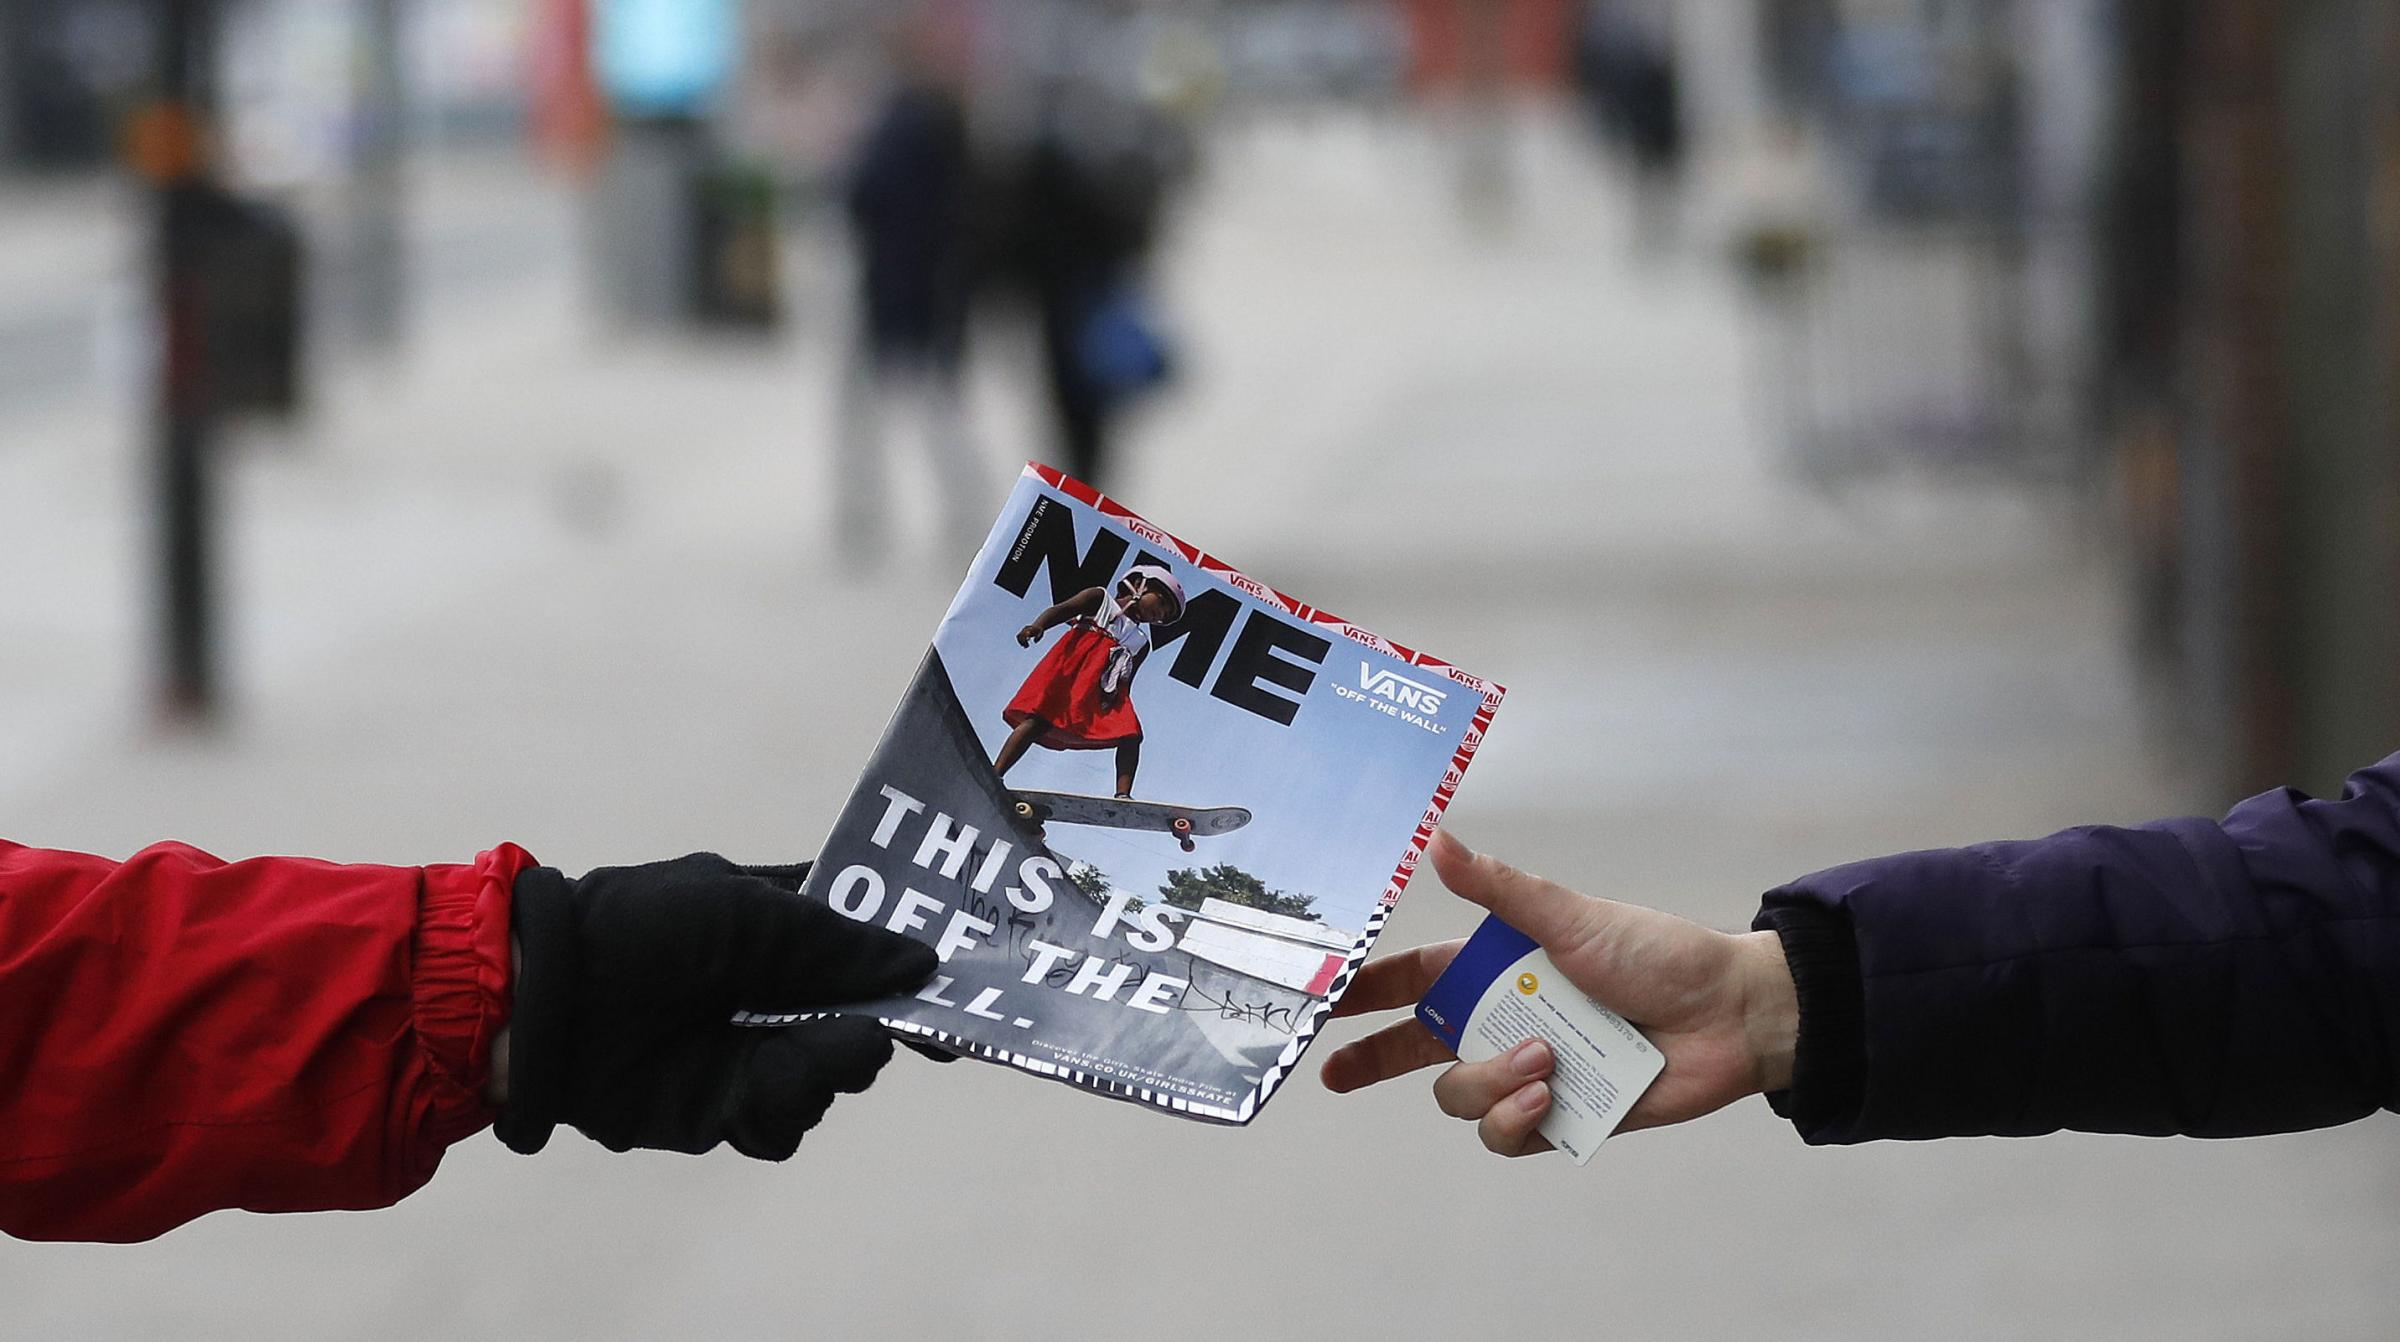 NME is moving to a digital-only format. Photograph: AP